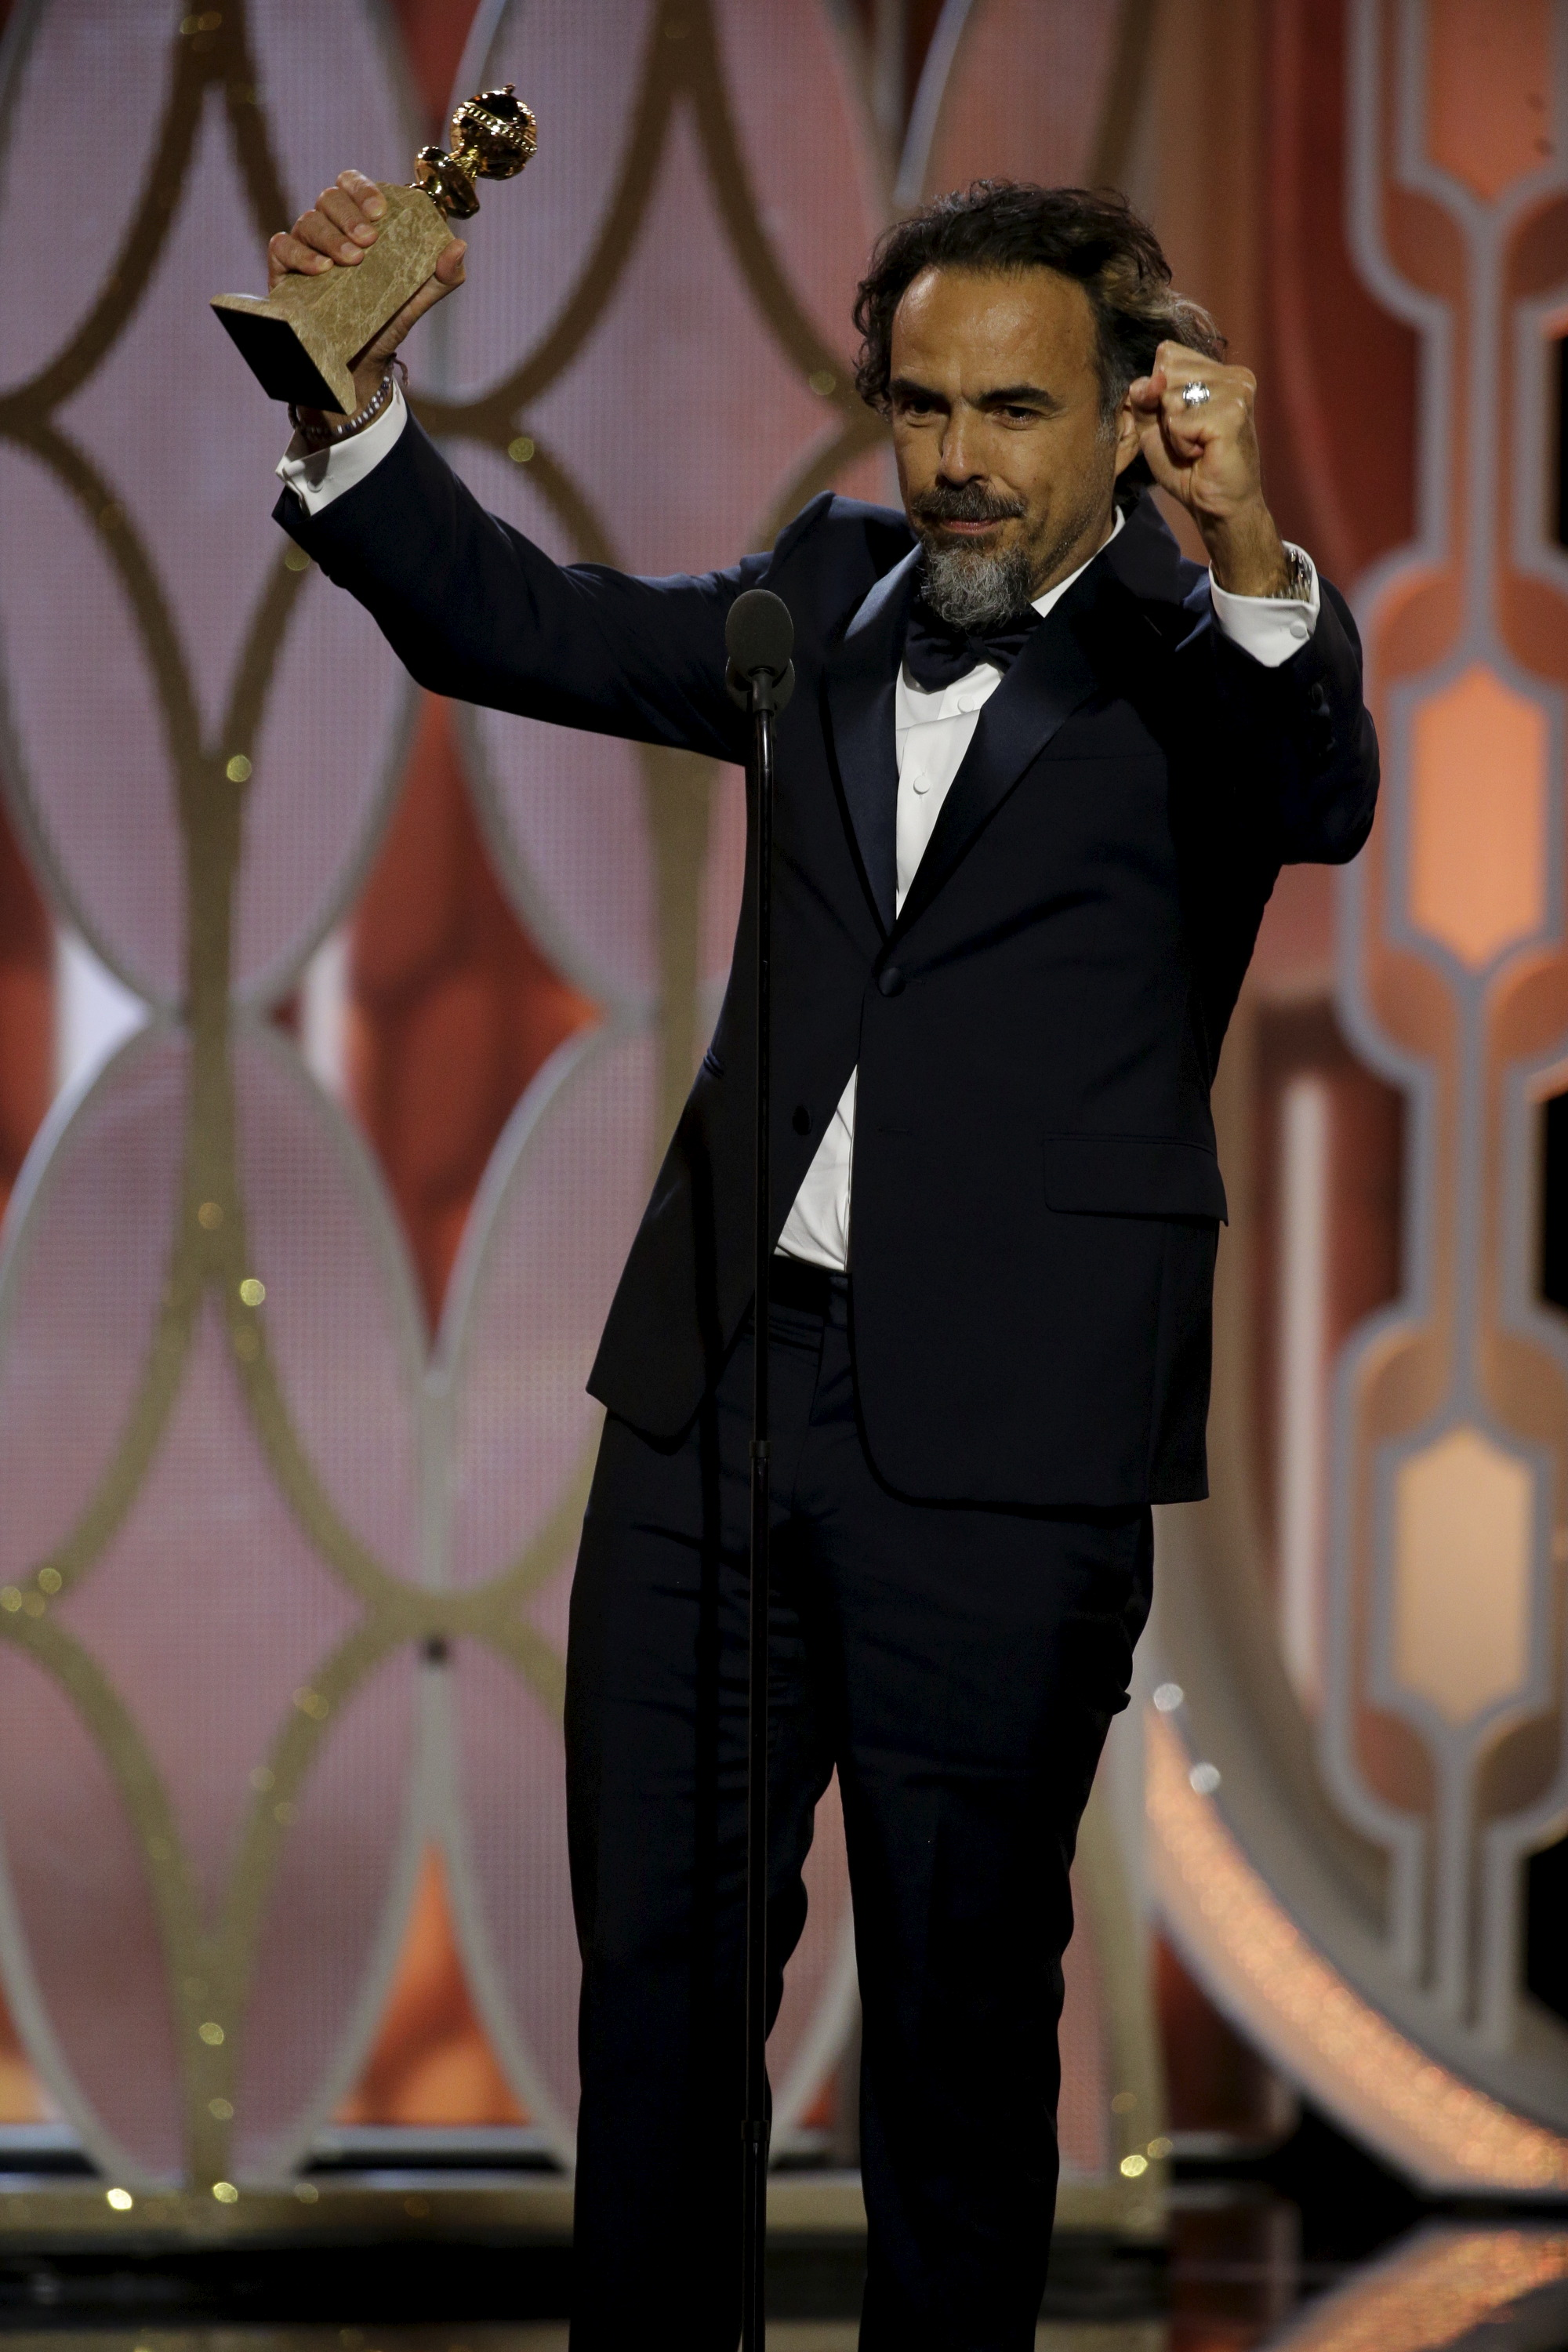 """Alejandro G. Inarritu reacts after winning the Best Director - Motion Picture for """"The Revenant"""", at the 73rd Golden Globe Awards in Beverly Hills, California January 10, 2016.  REUTERS/Paul Drinkwater/NBC Universal/Handout For editorial use only. Additional clearance required for commercial or promotional use. Contact your local office for assistance. Any commercial or promotional use of NBCUniversal content requires NBCUniversal's prior written consent. No book publishing without prior approval. TPX IMAGES OF THE DAY      - RTX21S9P"""